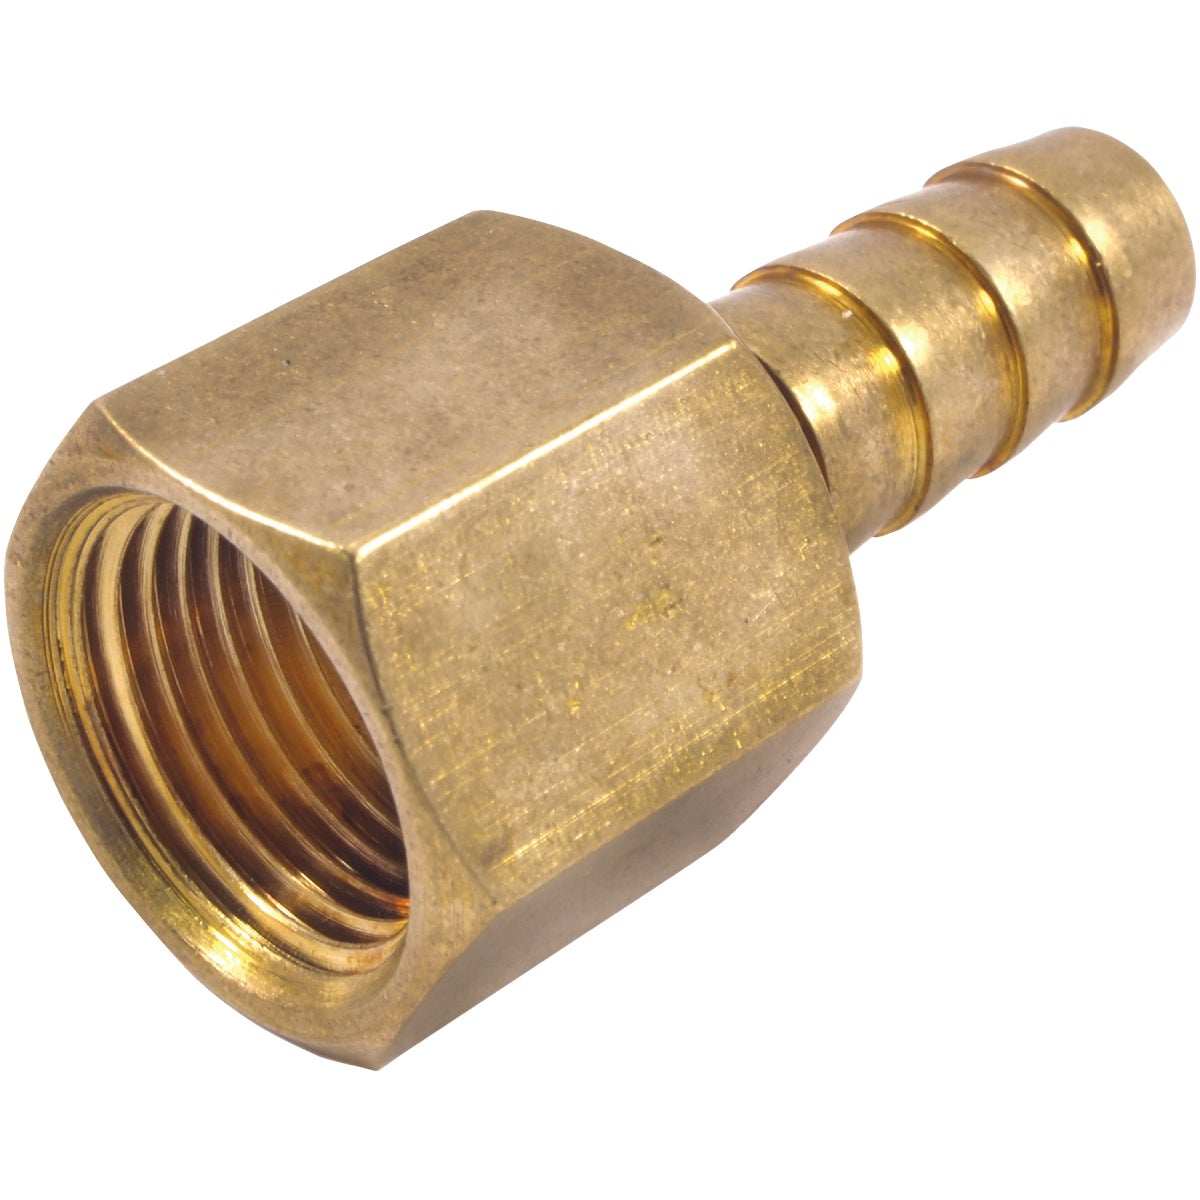 "3/8"" BRS BARBD HOSE END - 75530 by Forney Industries"